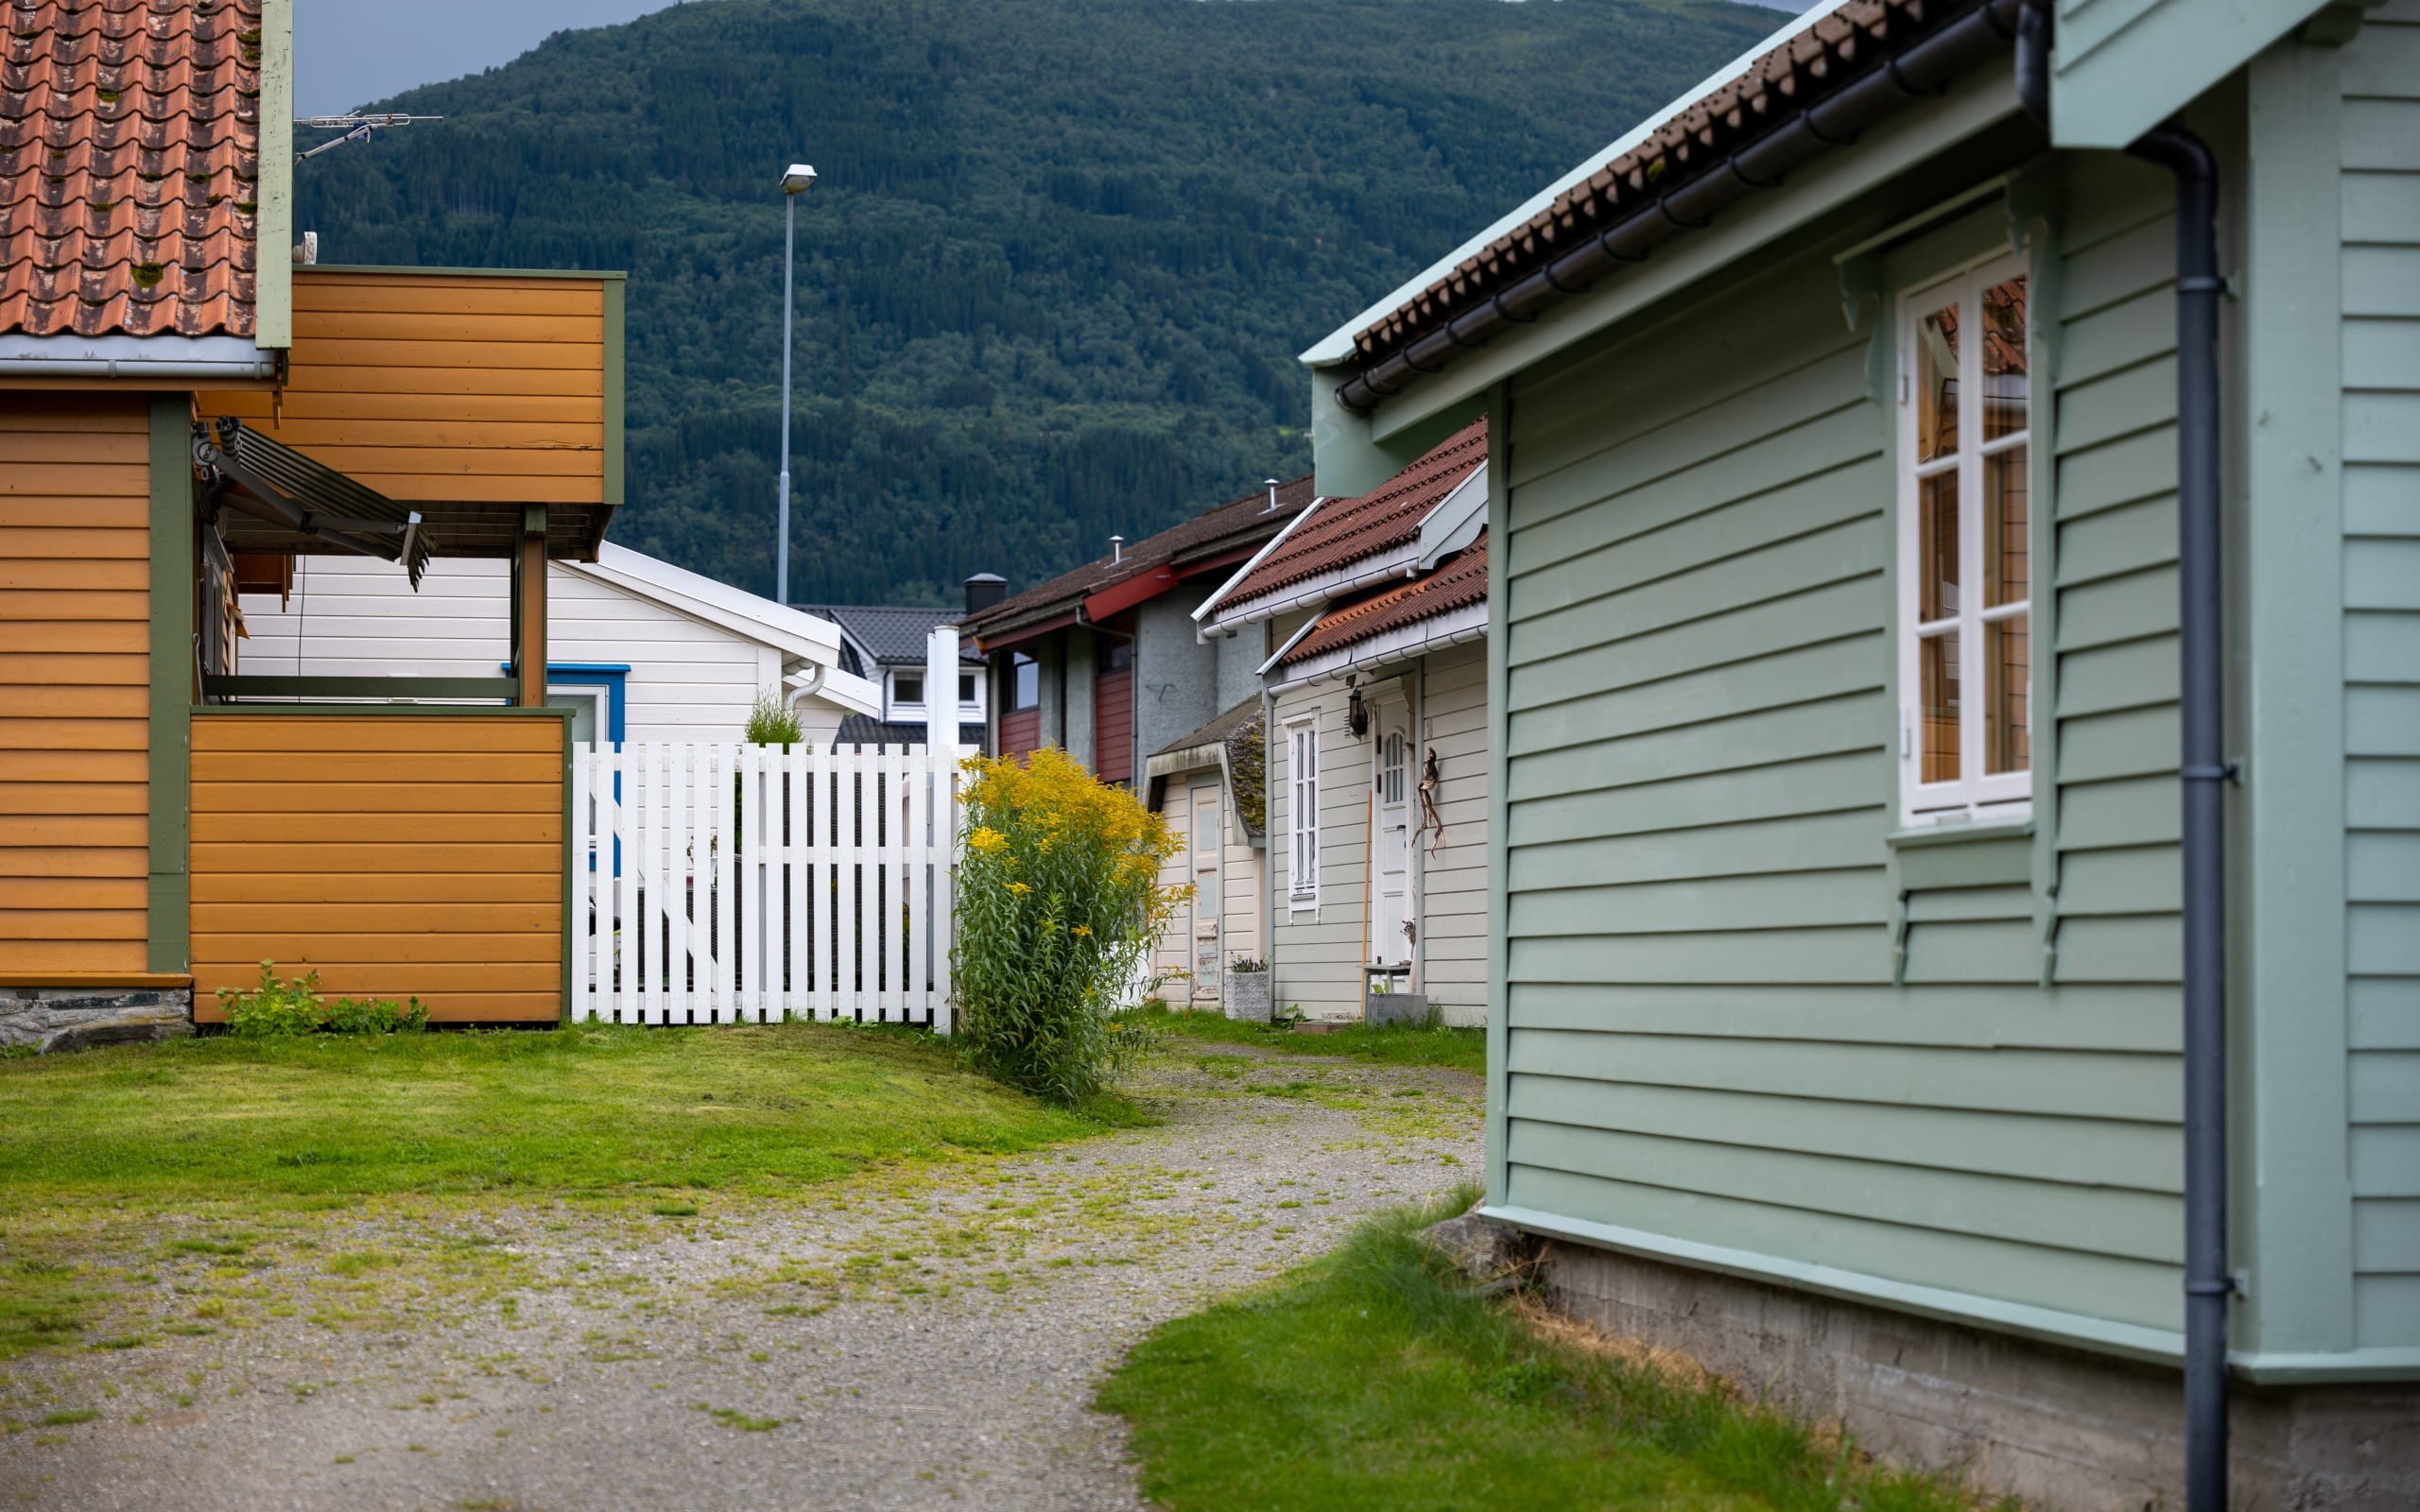 Narre alley between wooden houses in Vik